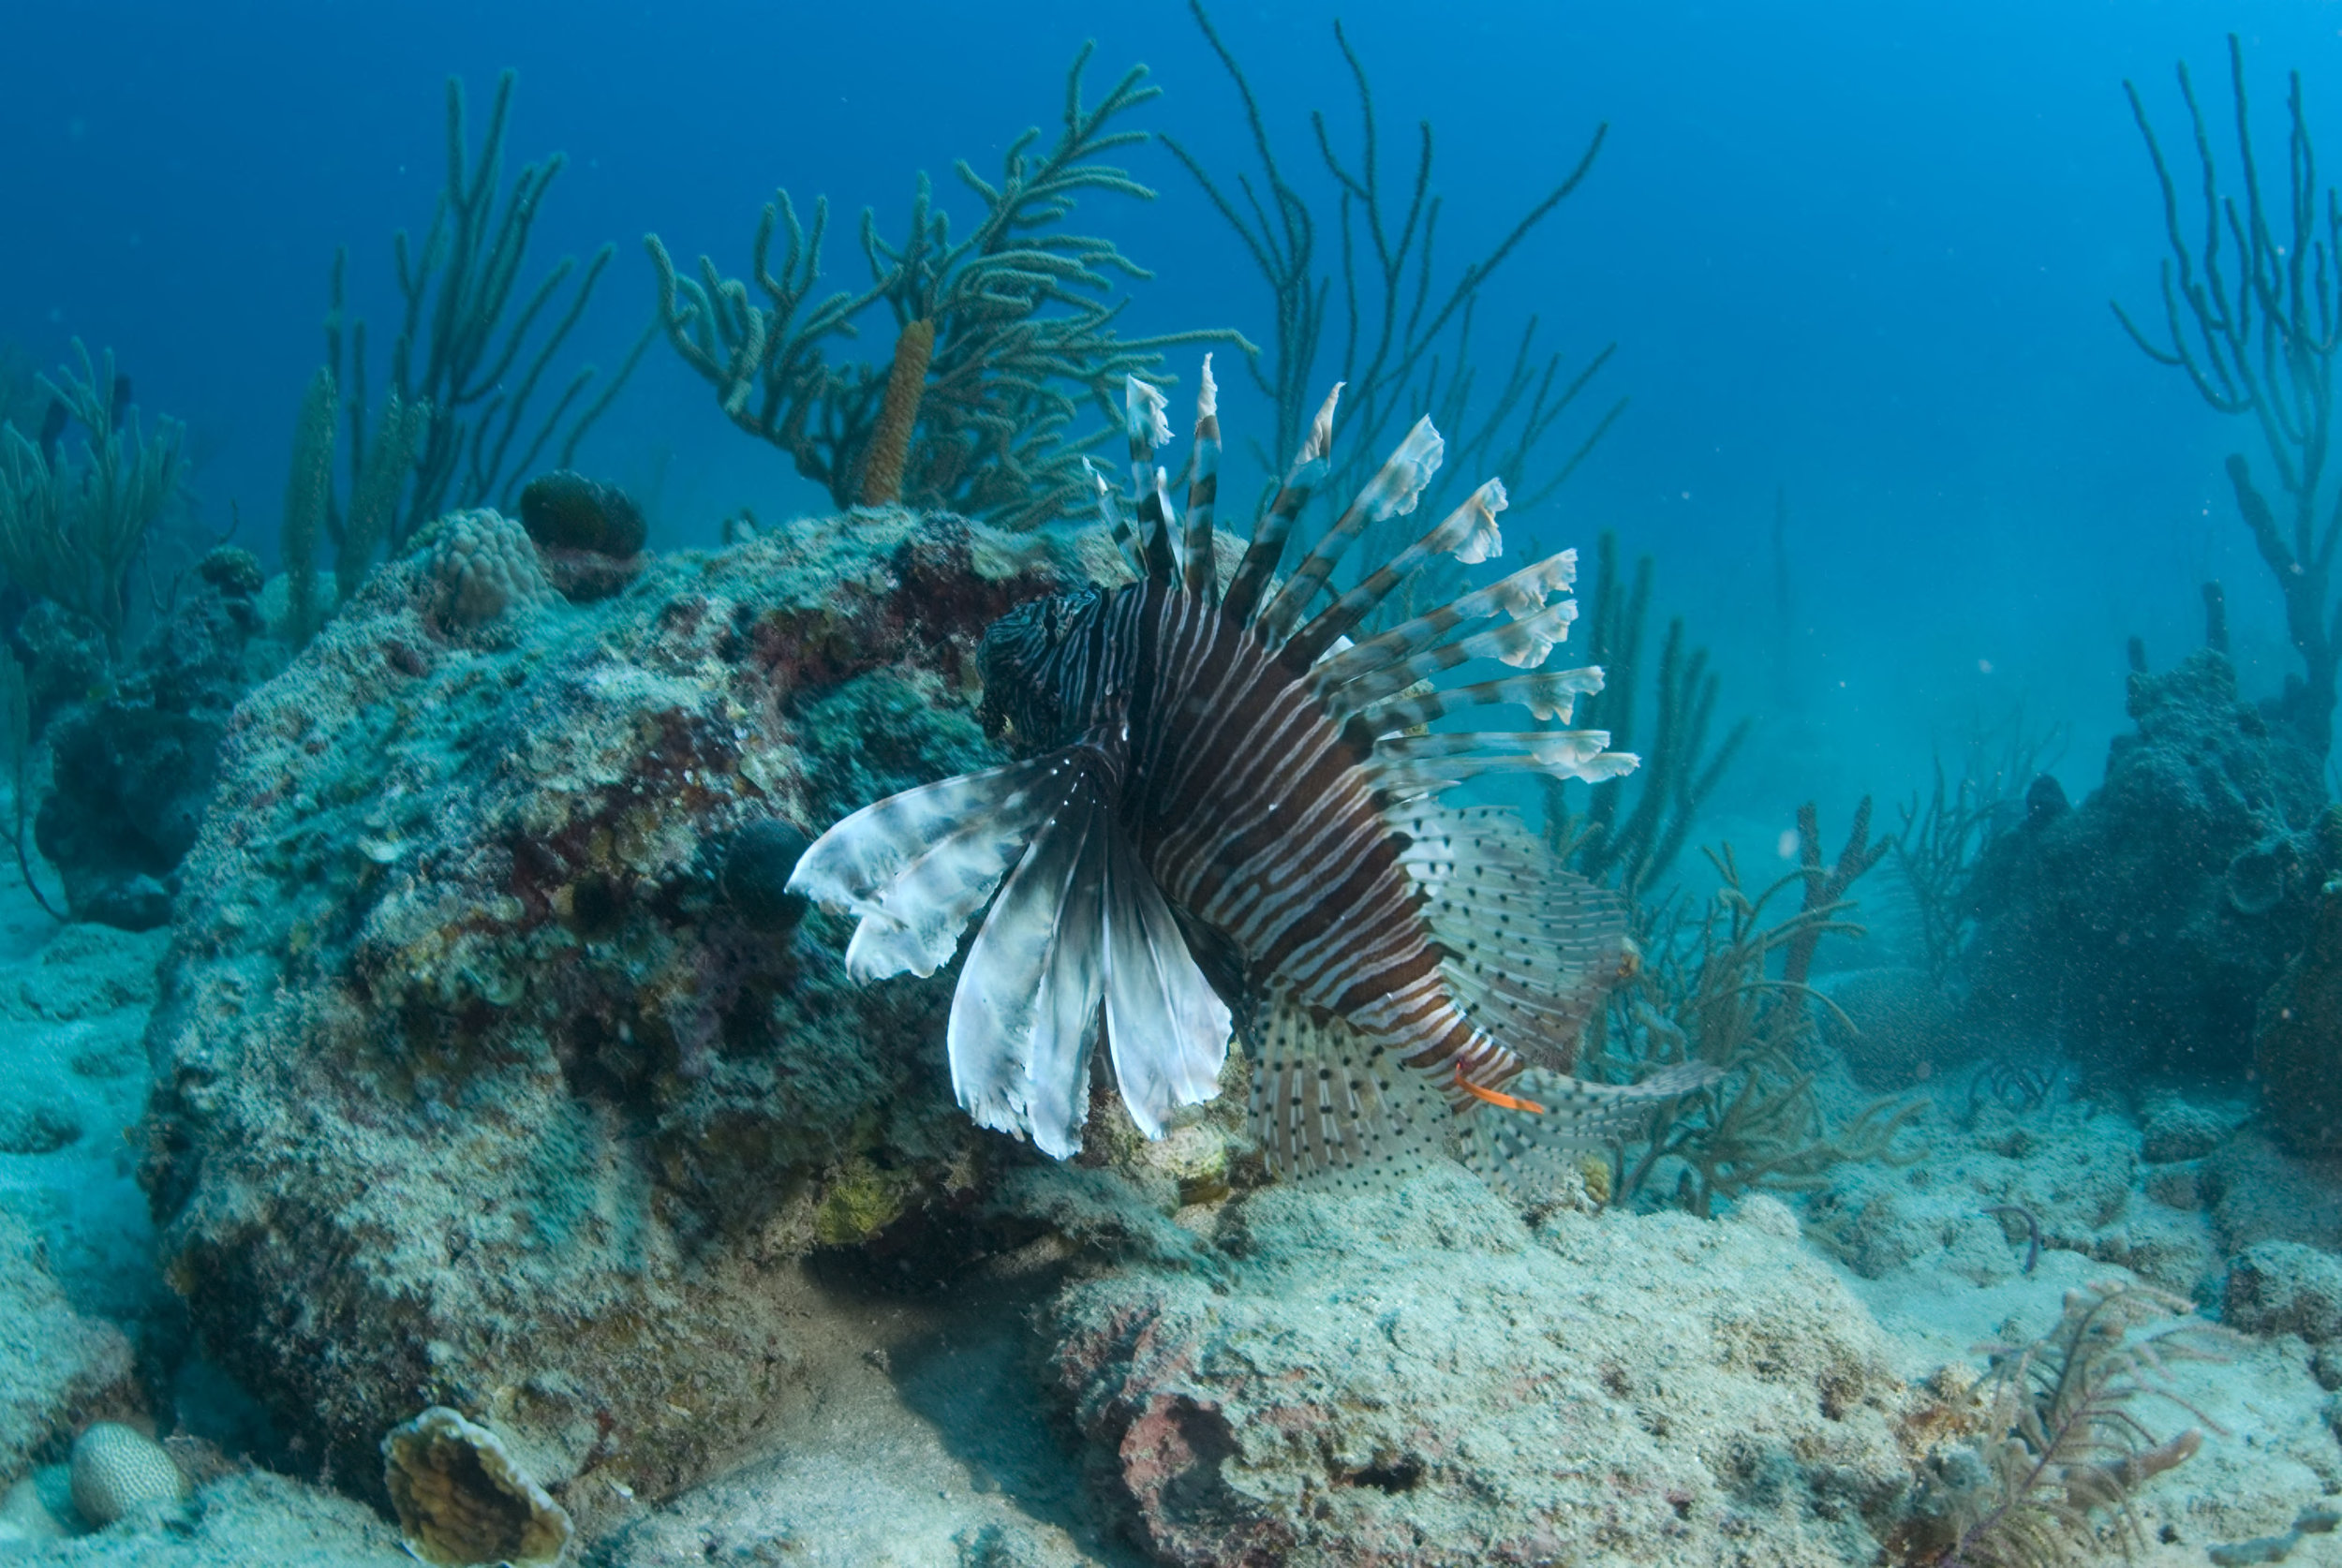 The orange streamer tag seen here helps researchers identify this lionfish in followup surveys. Photo by Lad Akins.